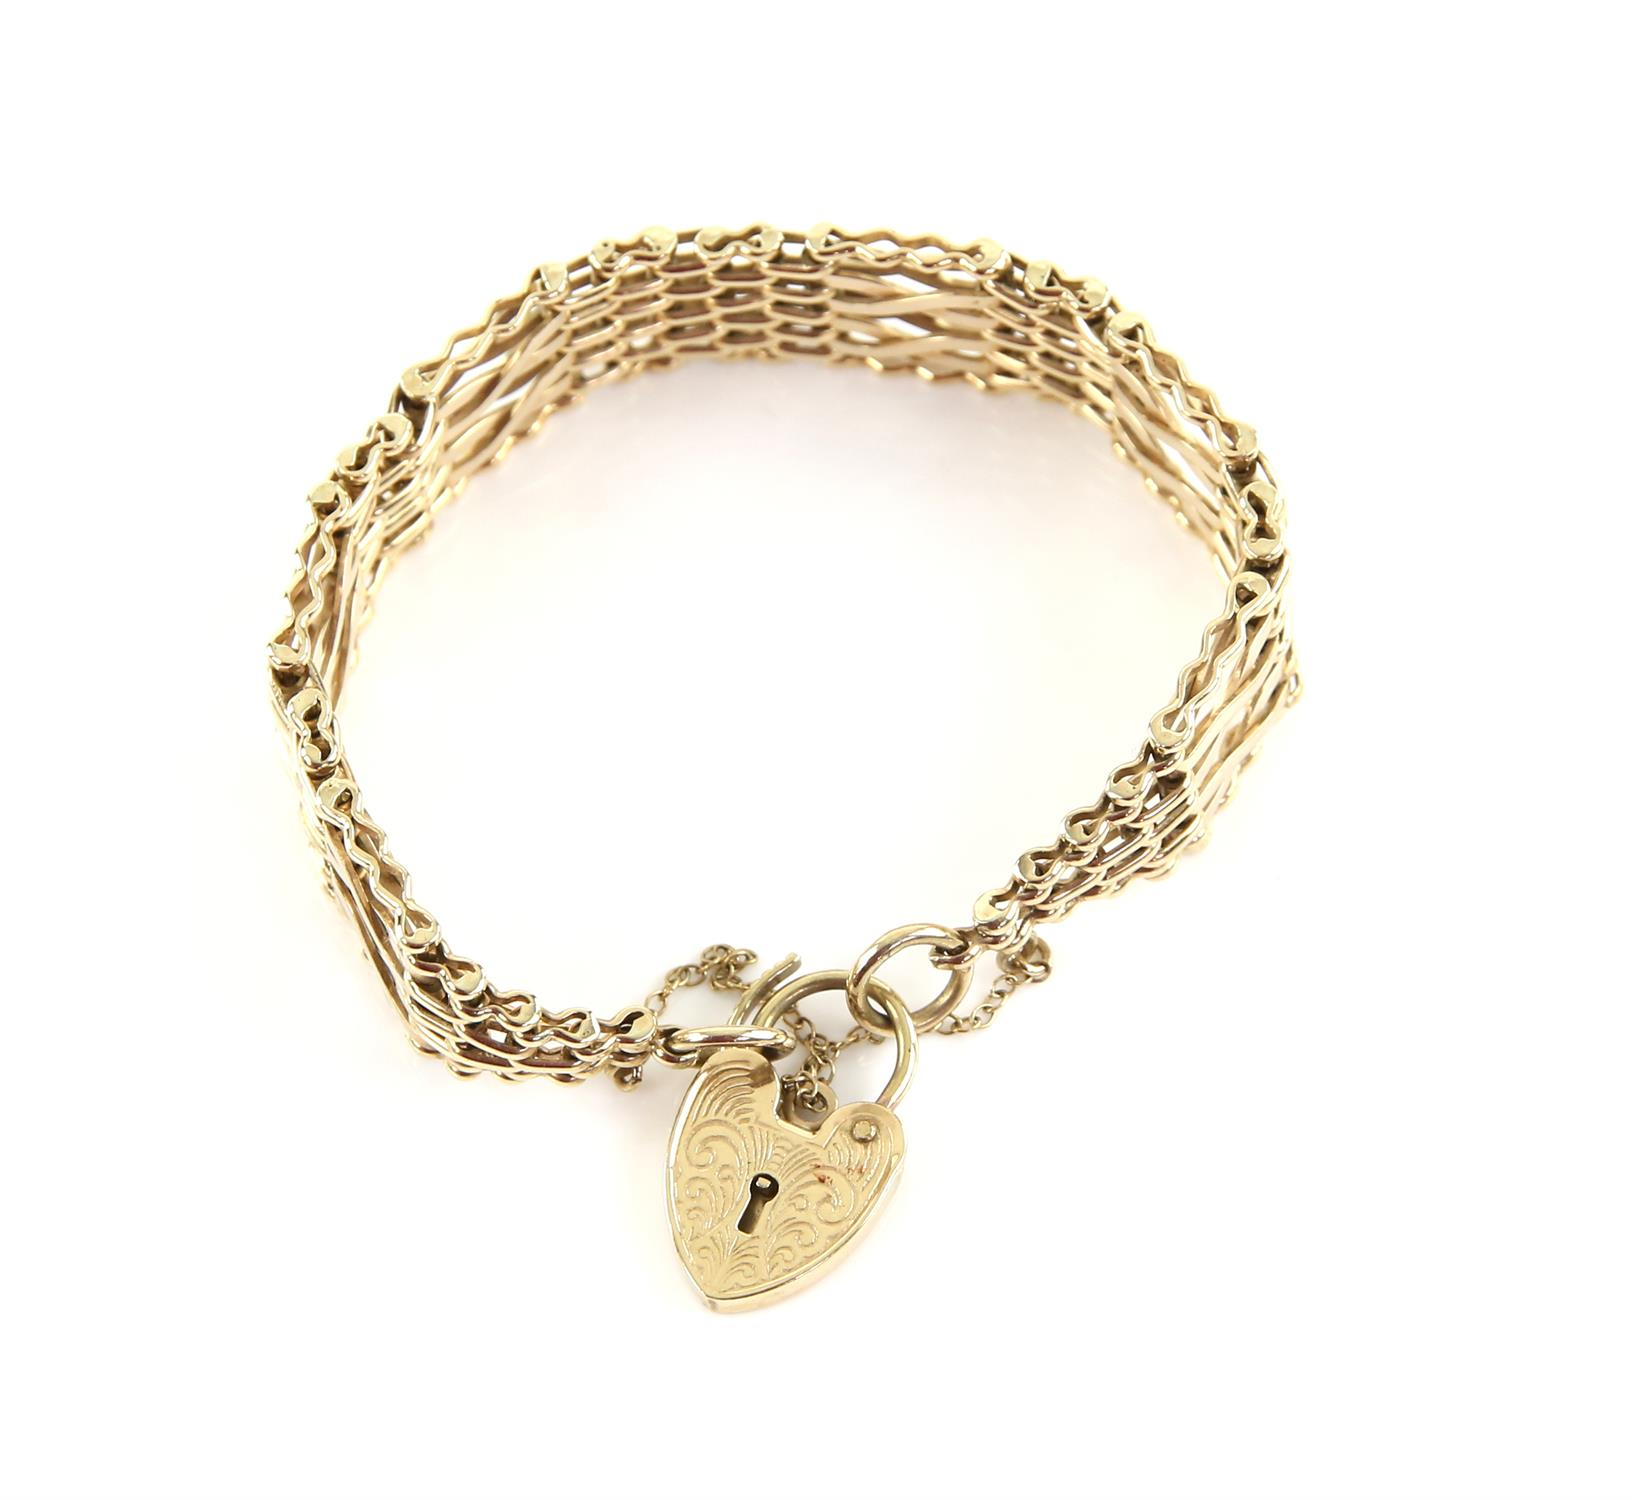 Vintage gold gate bracelet with fancy gold links with sections of brick link between,